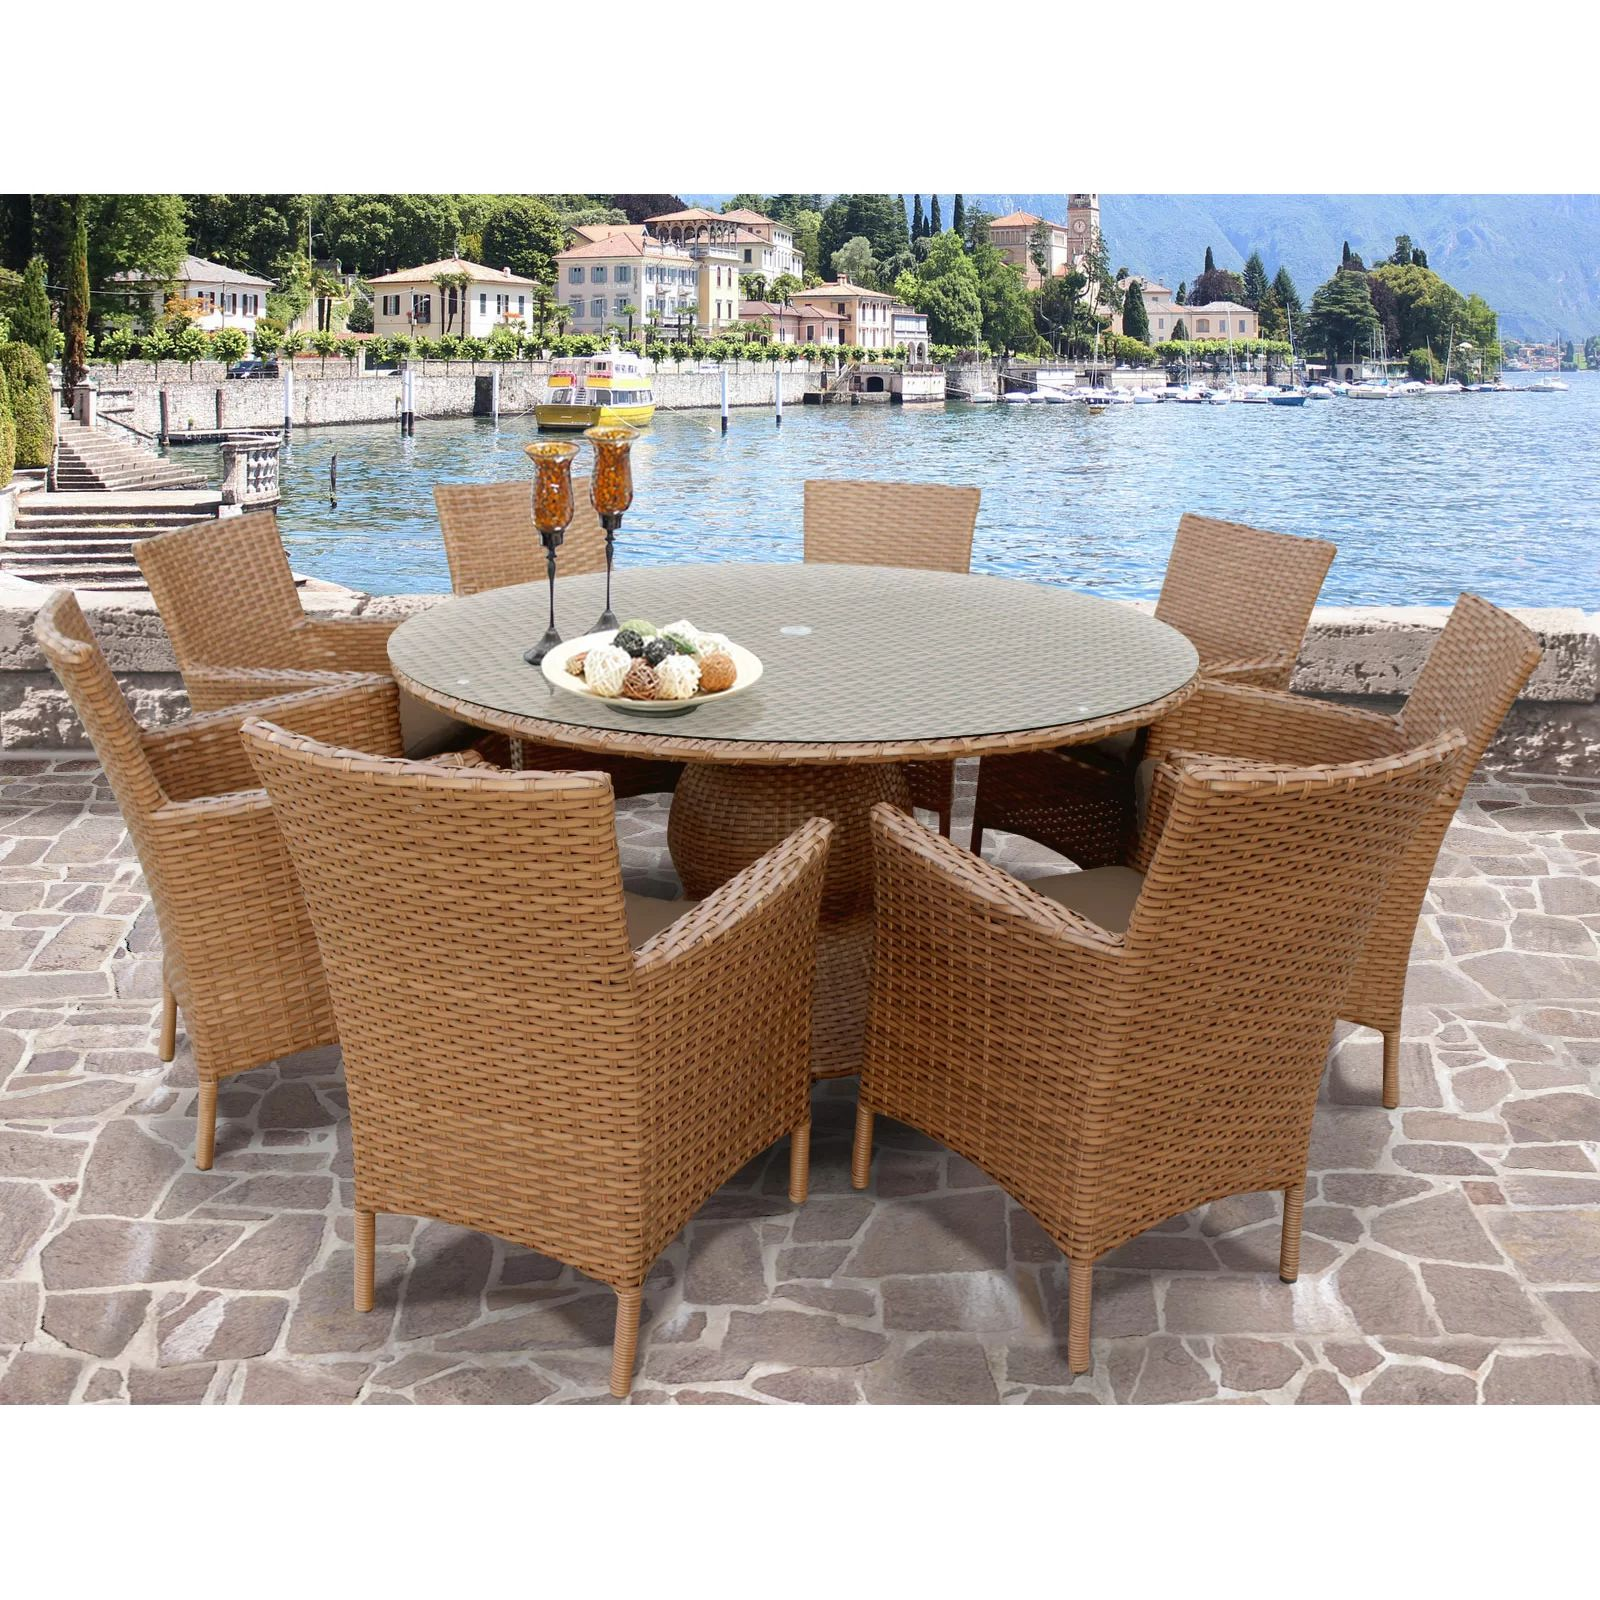 Laguna patio dining set